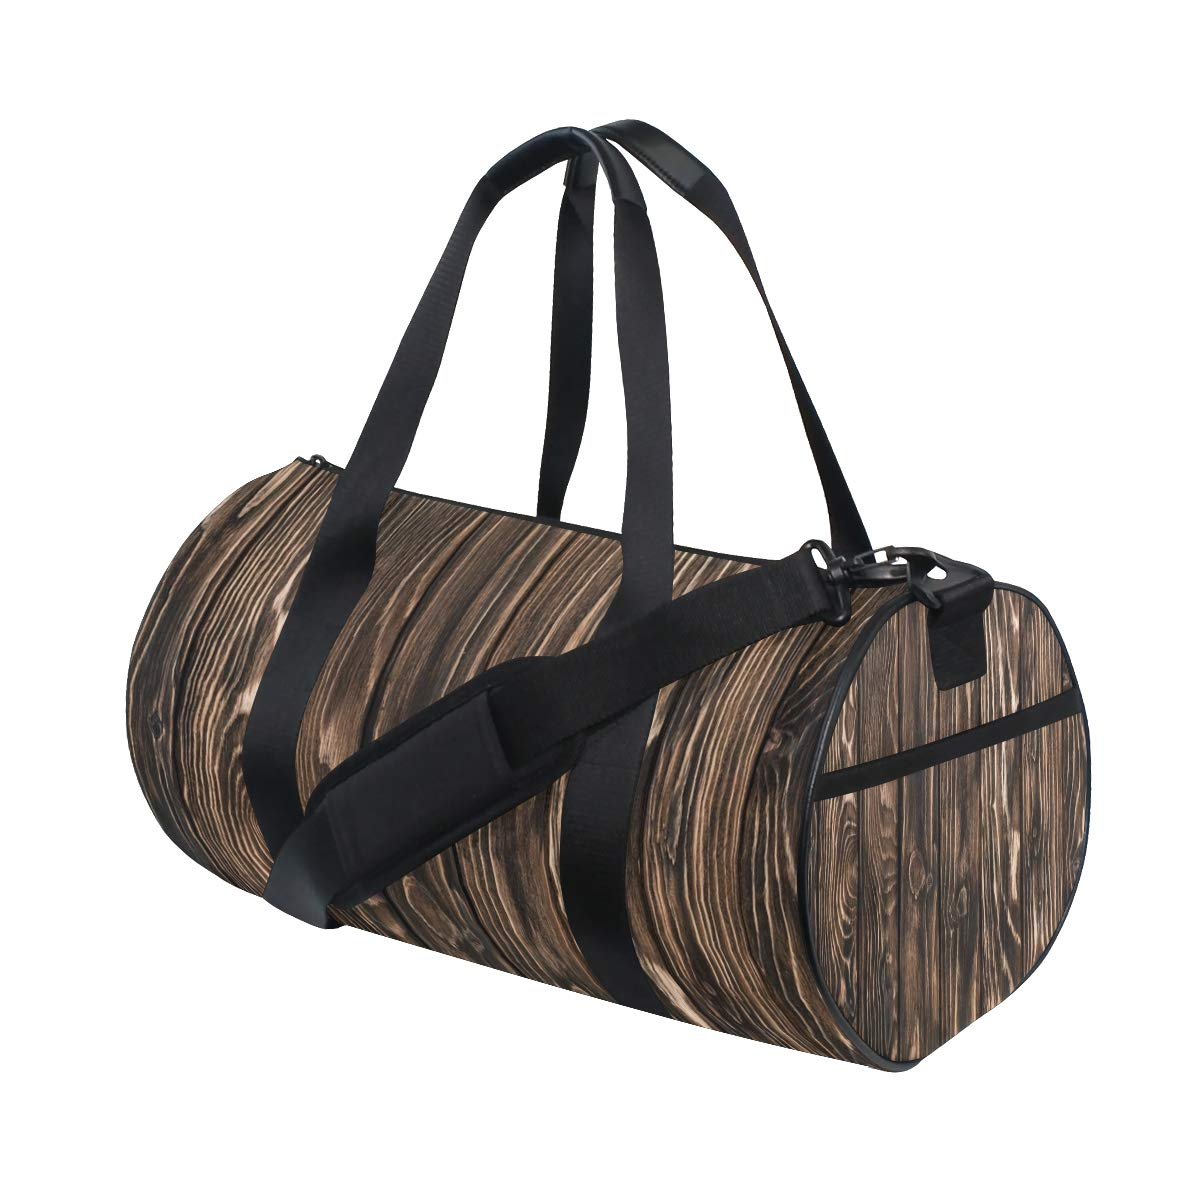 Wood Yoga Sports Gym Duffle Bags Tote Sling Travel Bag Patterned Canvas with Pocket and Zipper For Men Women Bag by EVERUI (Image #1)